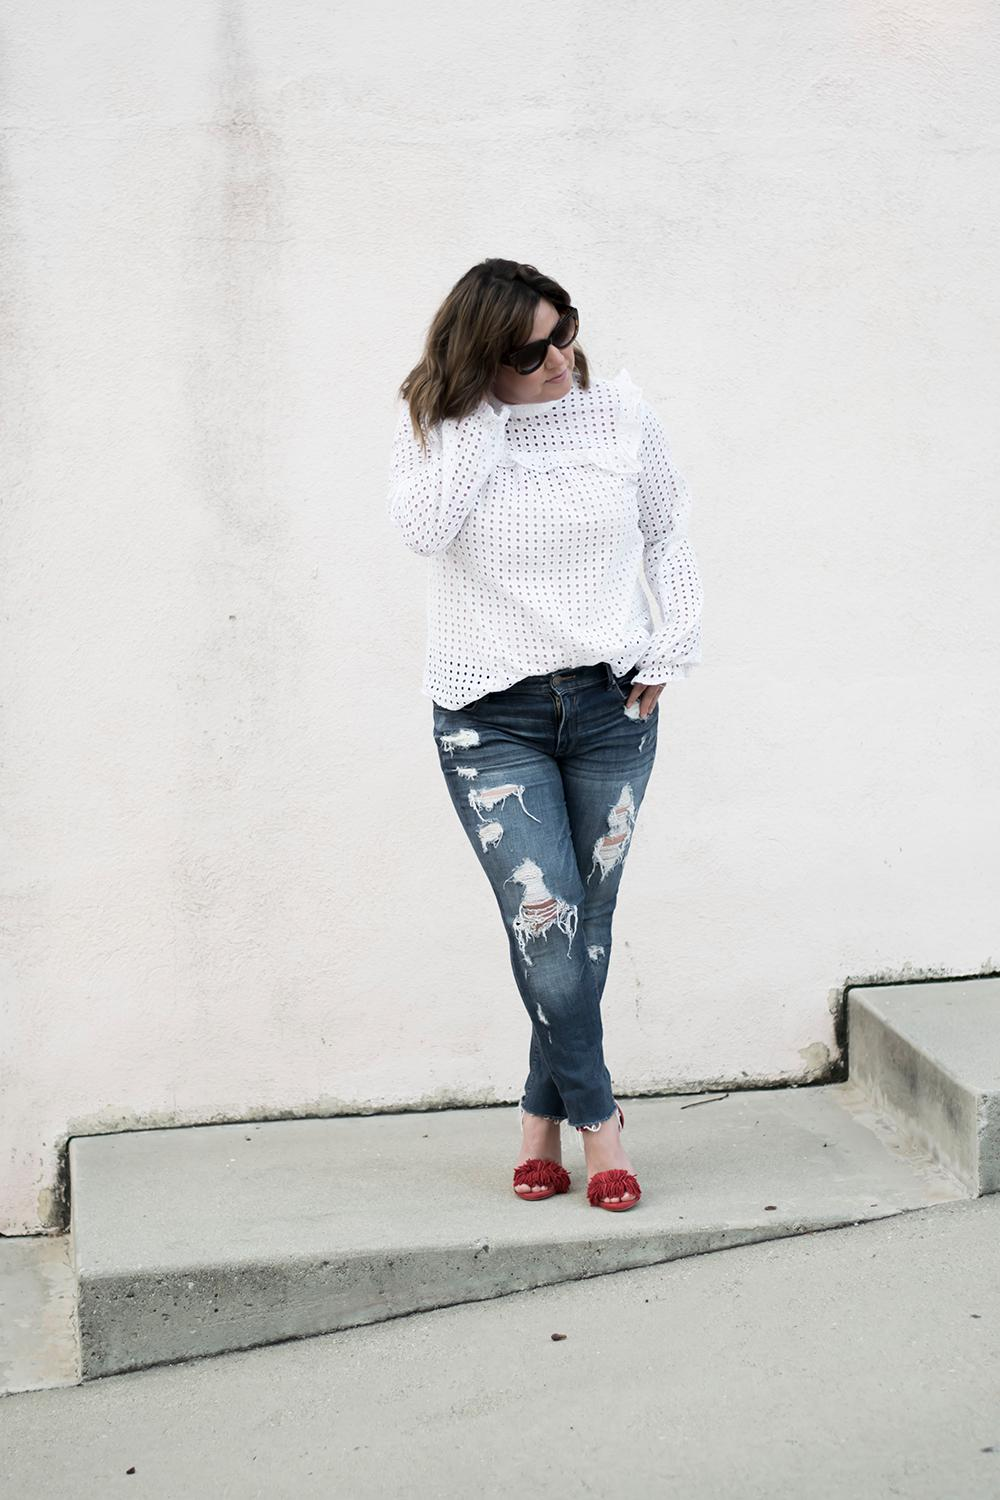 Fringed-Red-High-Heeled-Sandals-Outfit-Top-Blogger-Outfits-for-2017-Barefoot-in-LA-Fashion-Blog-Style-Ideas-0843